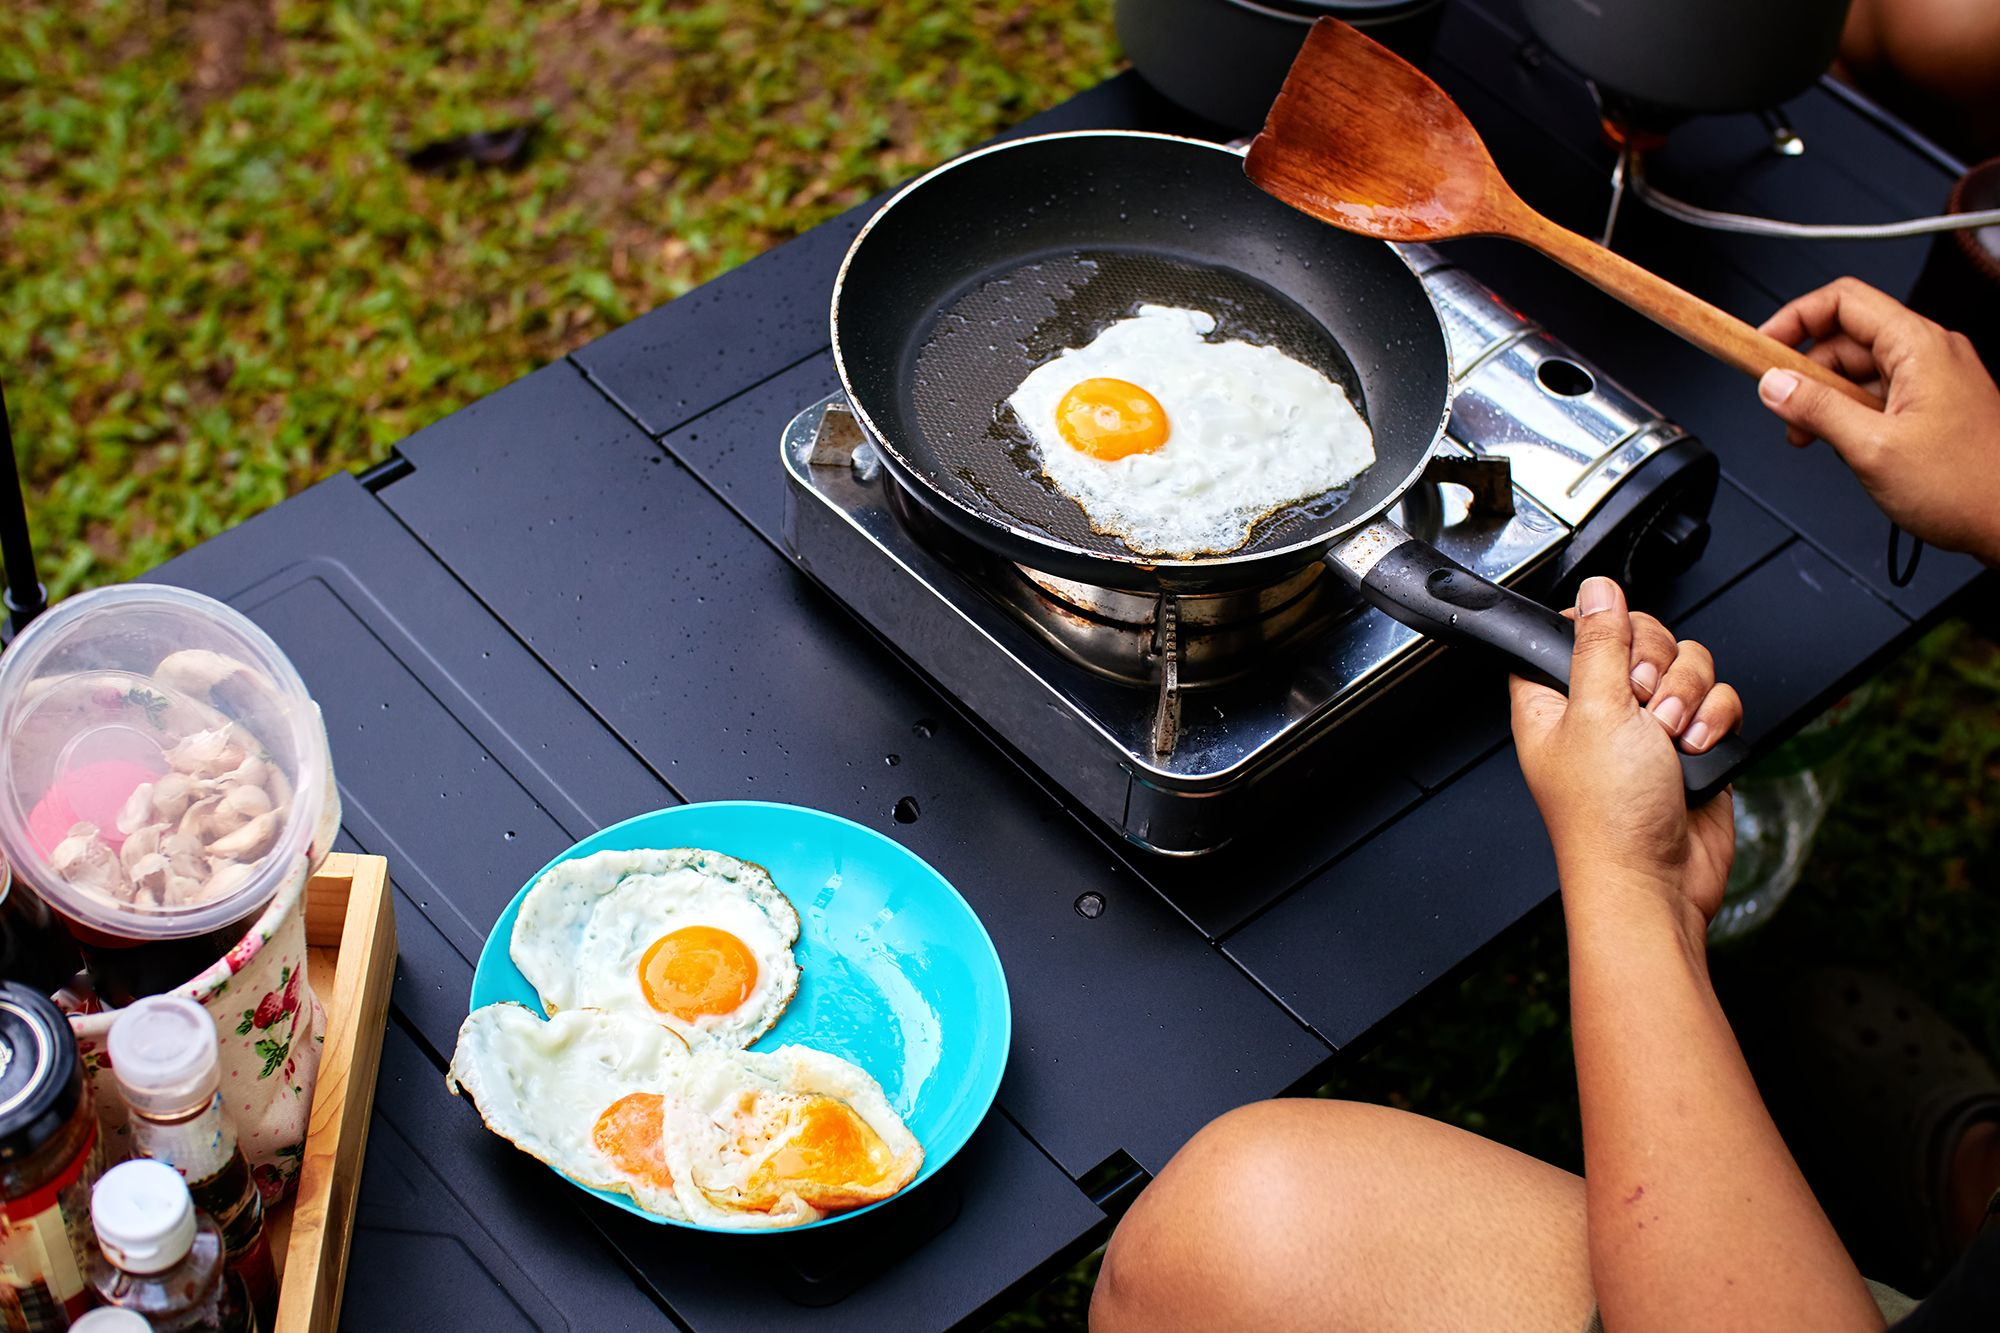 11 Best Camping Kitchens For 2021 Top Rated Portable Cooking Stations